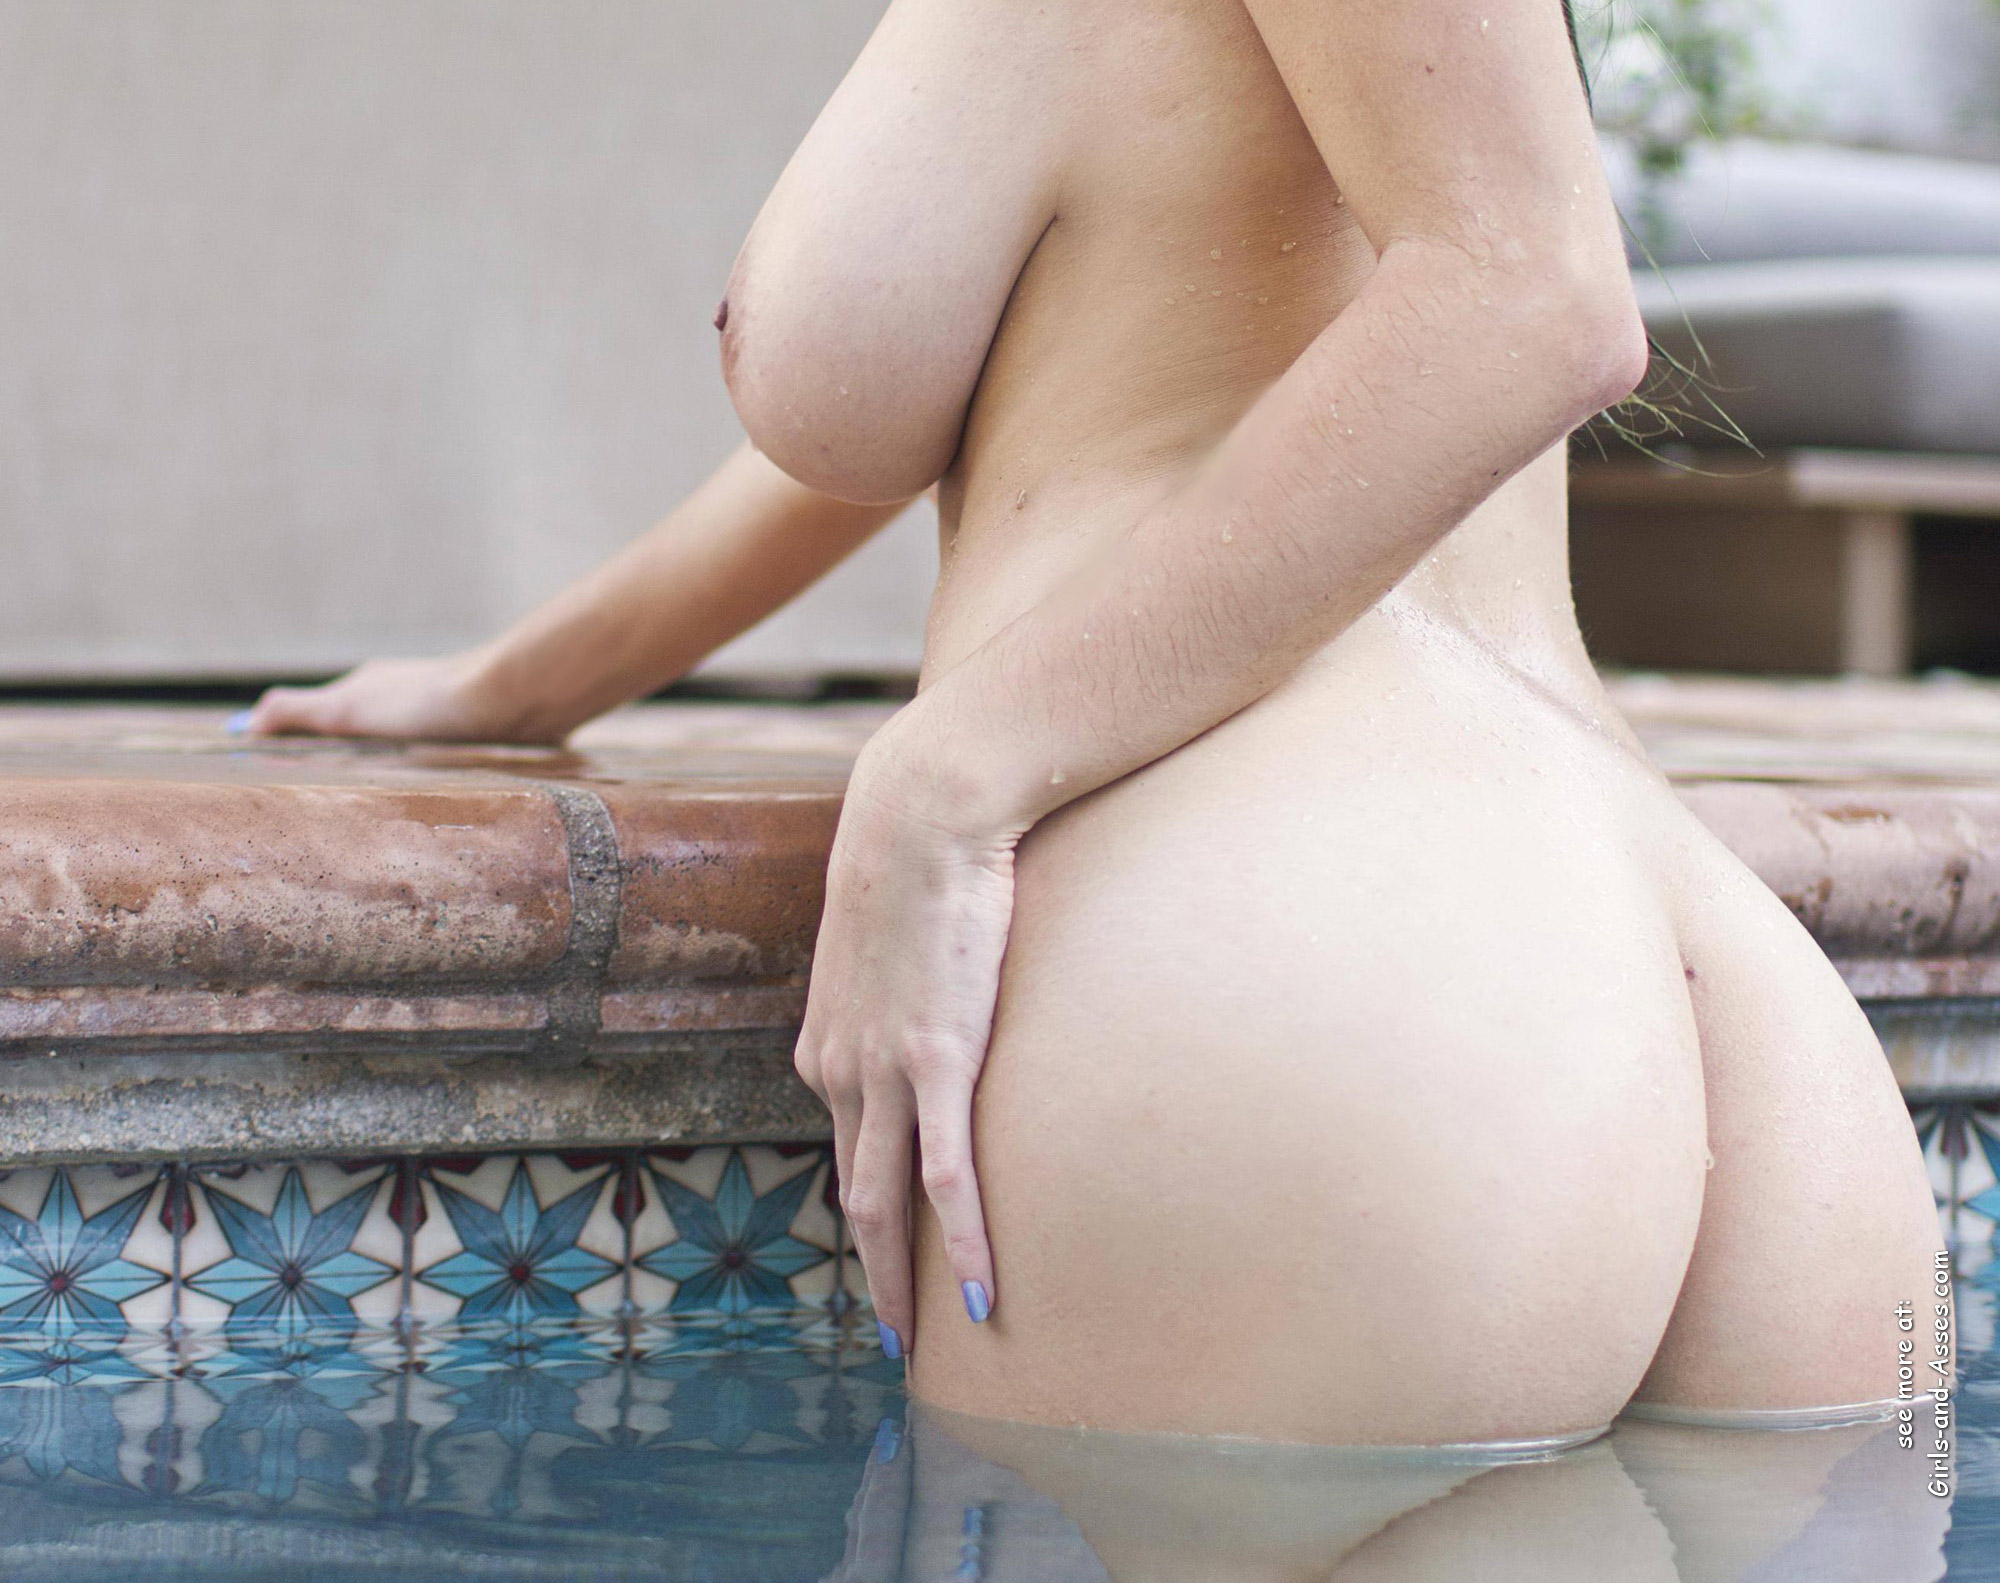 beautiful naked ass by the pool photo 00658